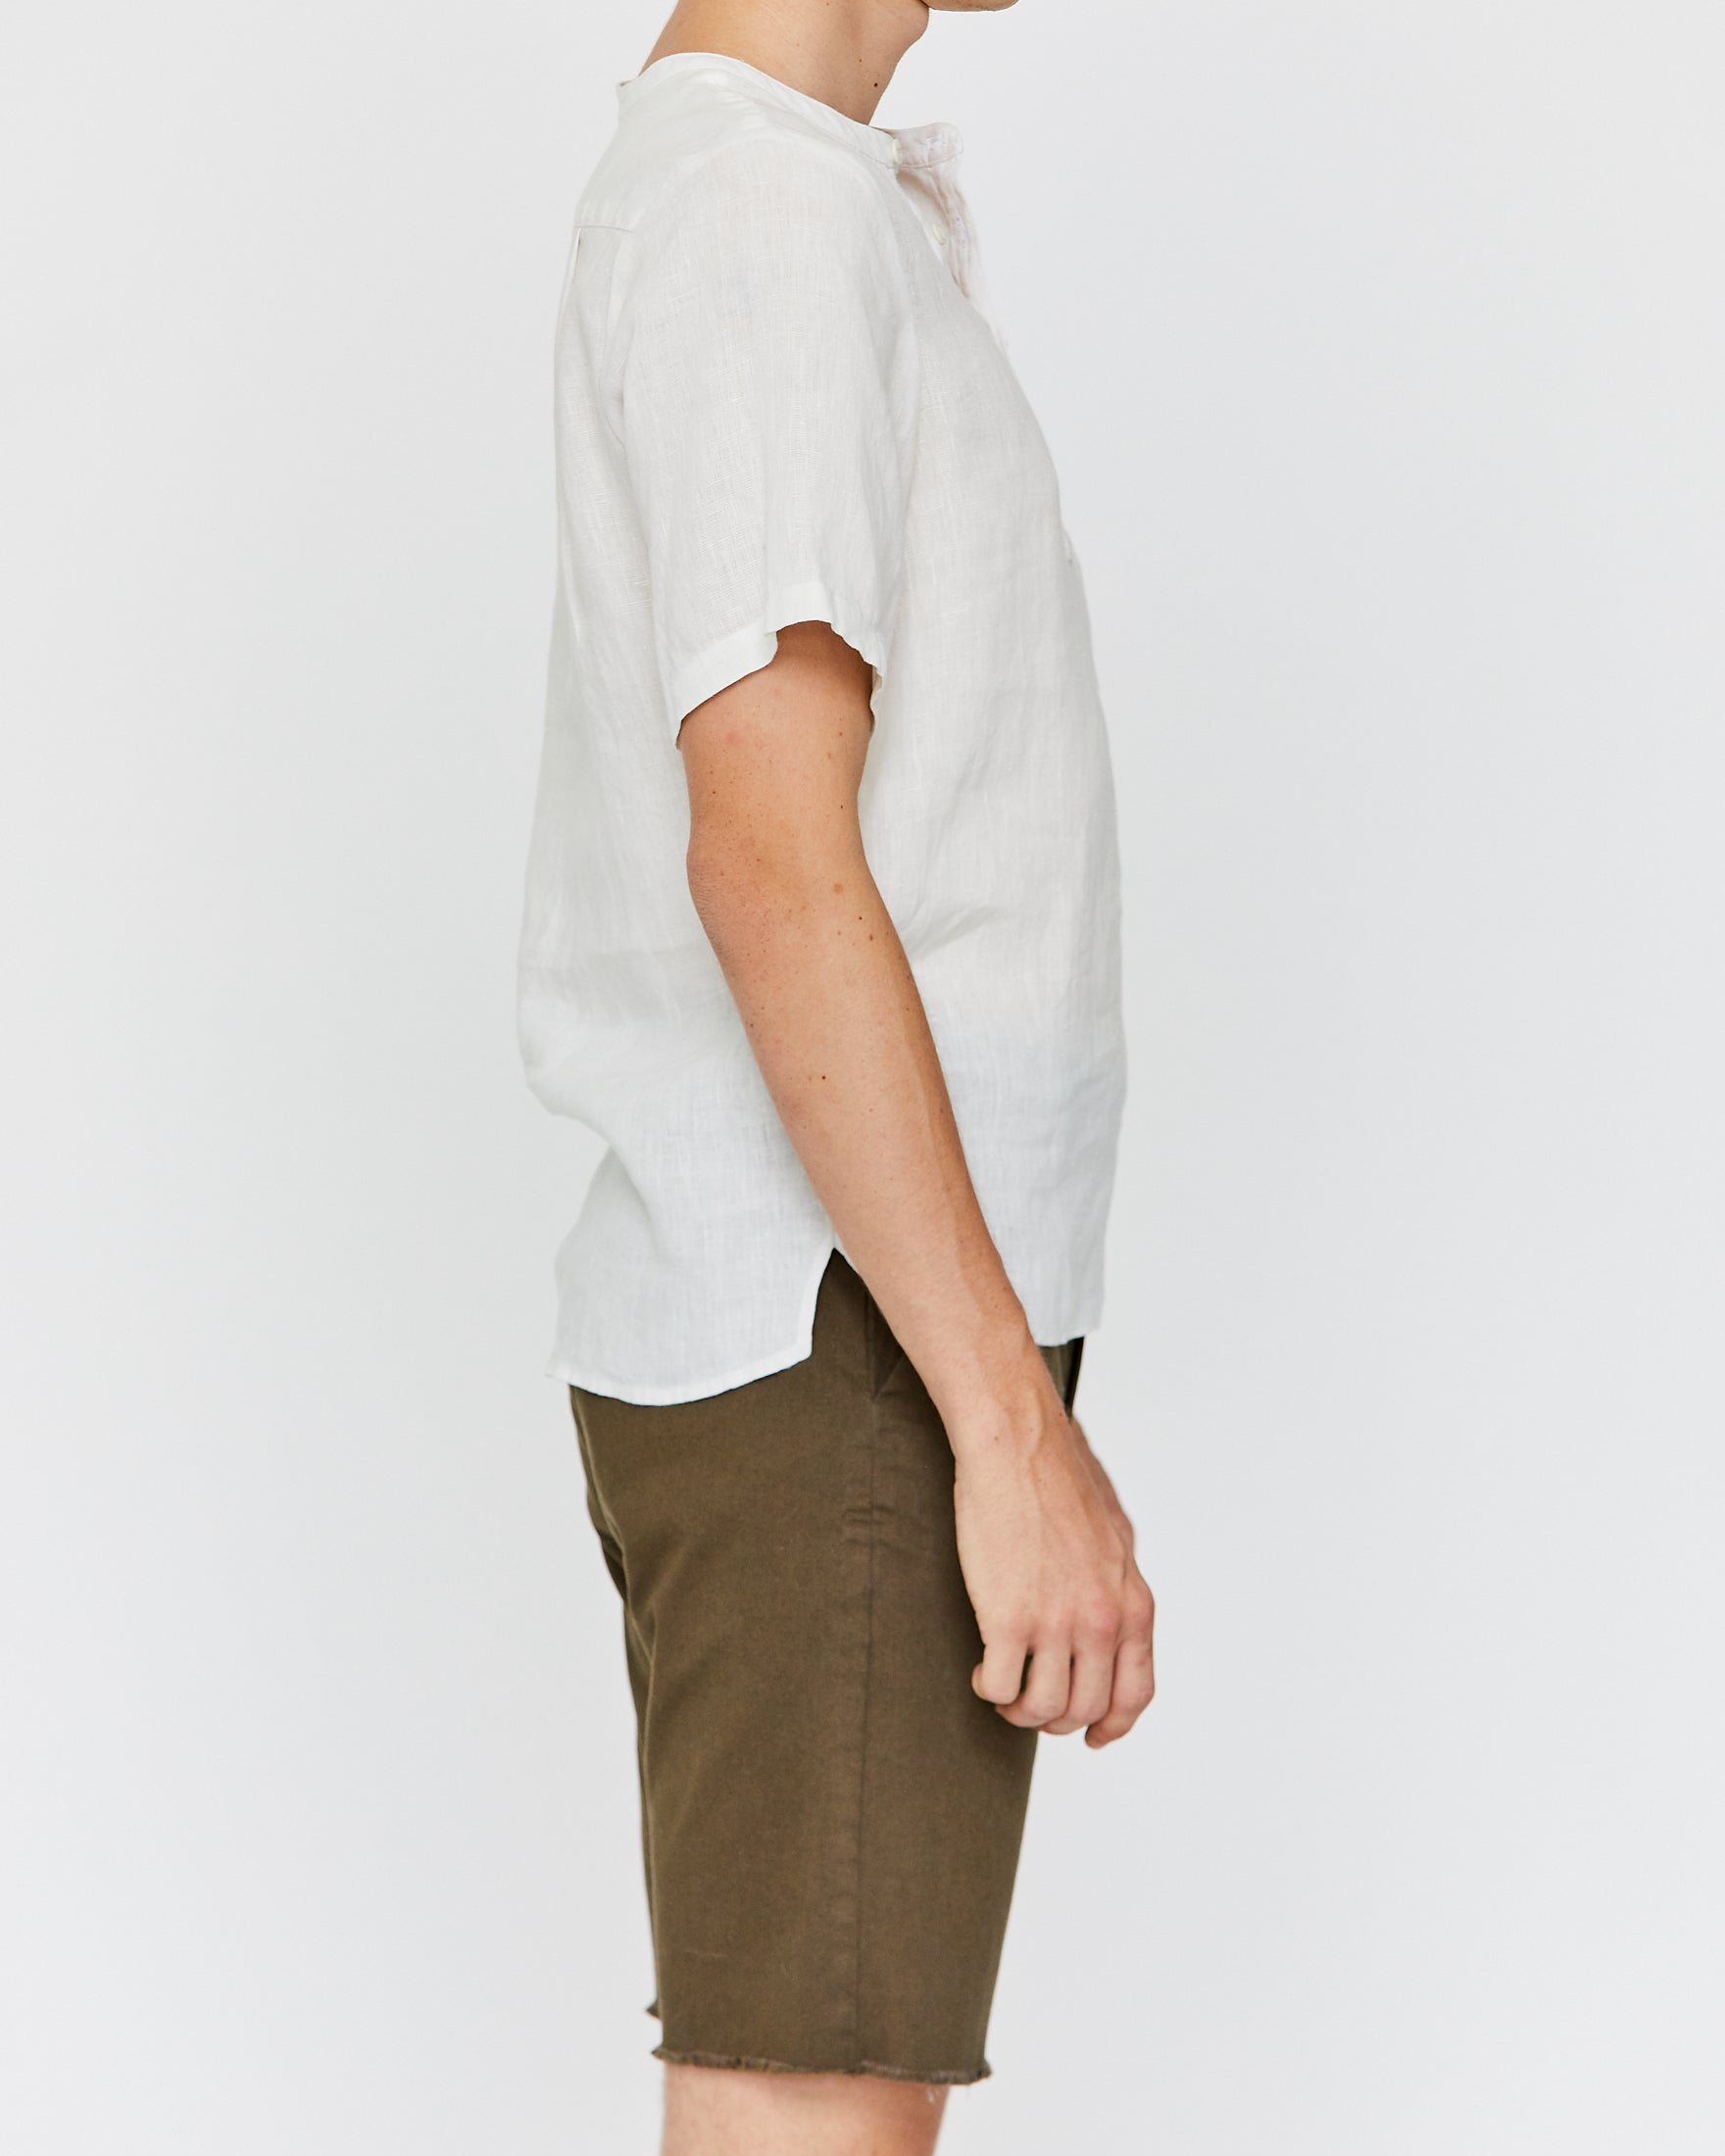 WESTON SHIRT - WHITE